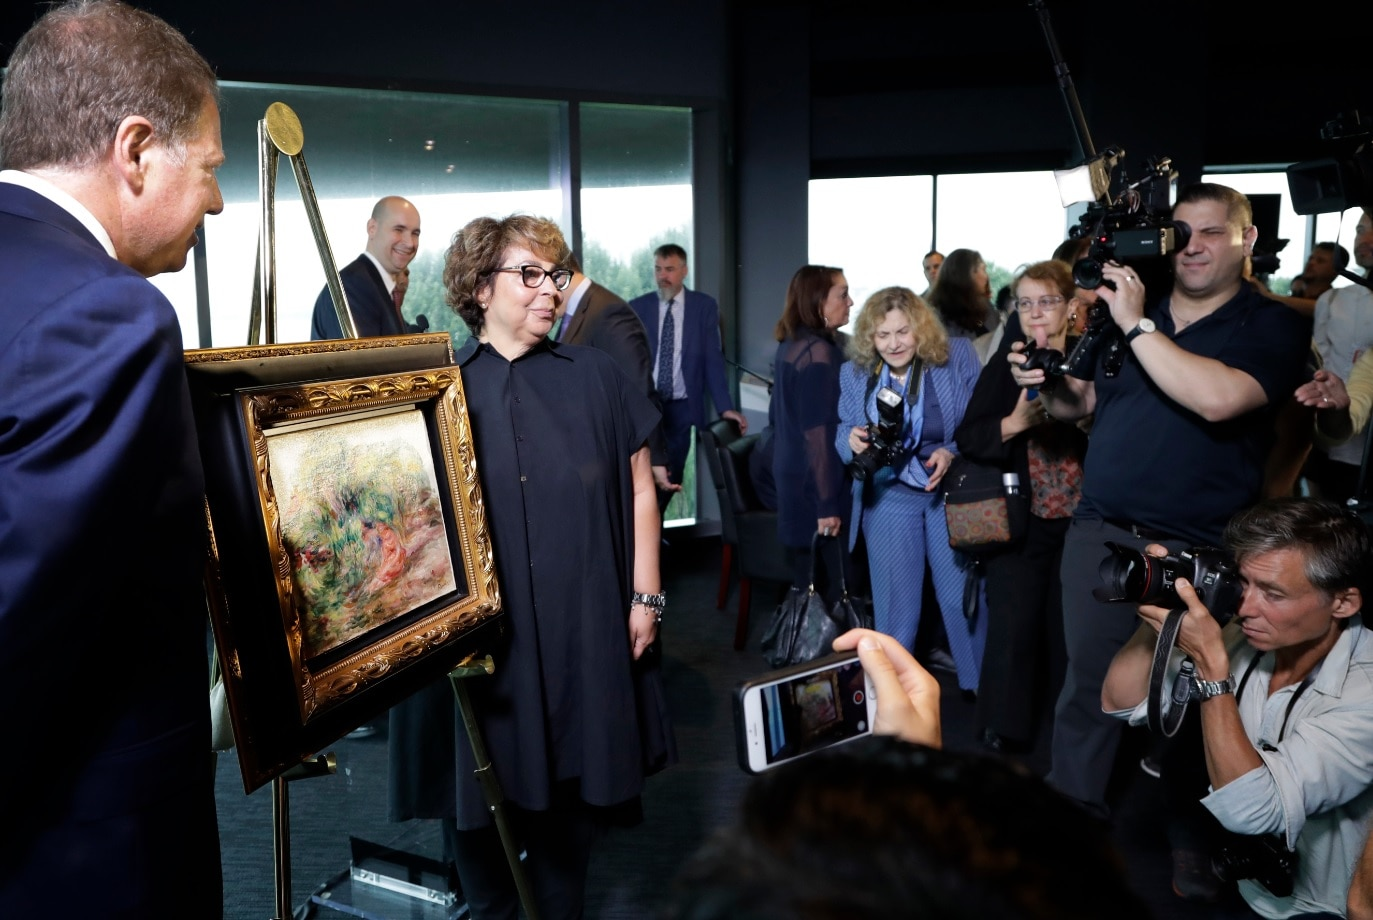 Renoir painting stolen by Nazis returned to rightful owner